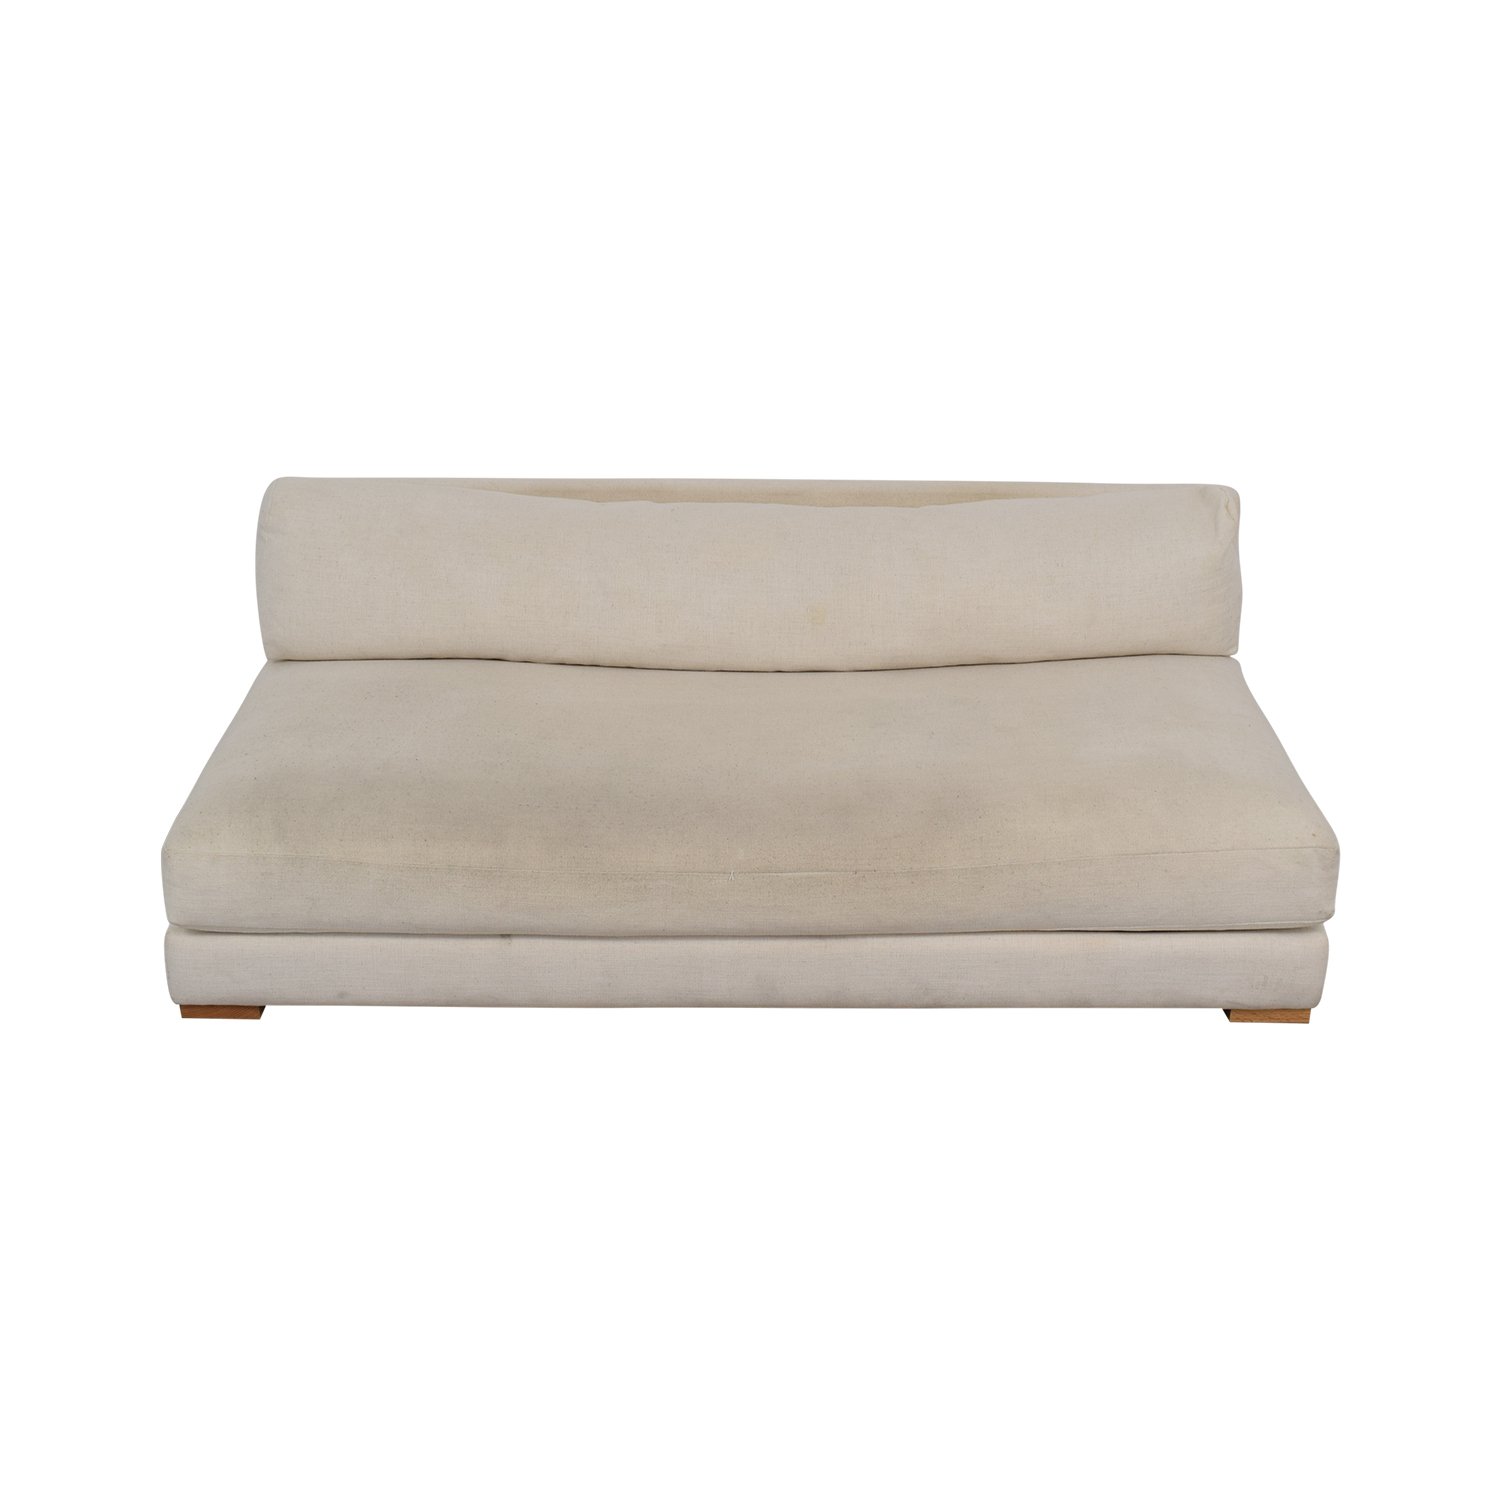 cb2 piazza sofa review outdoor air sleep couch armless sofas baci living room